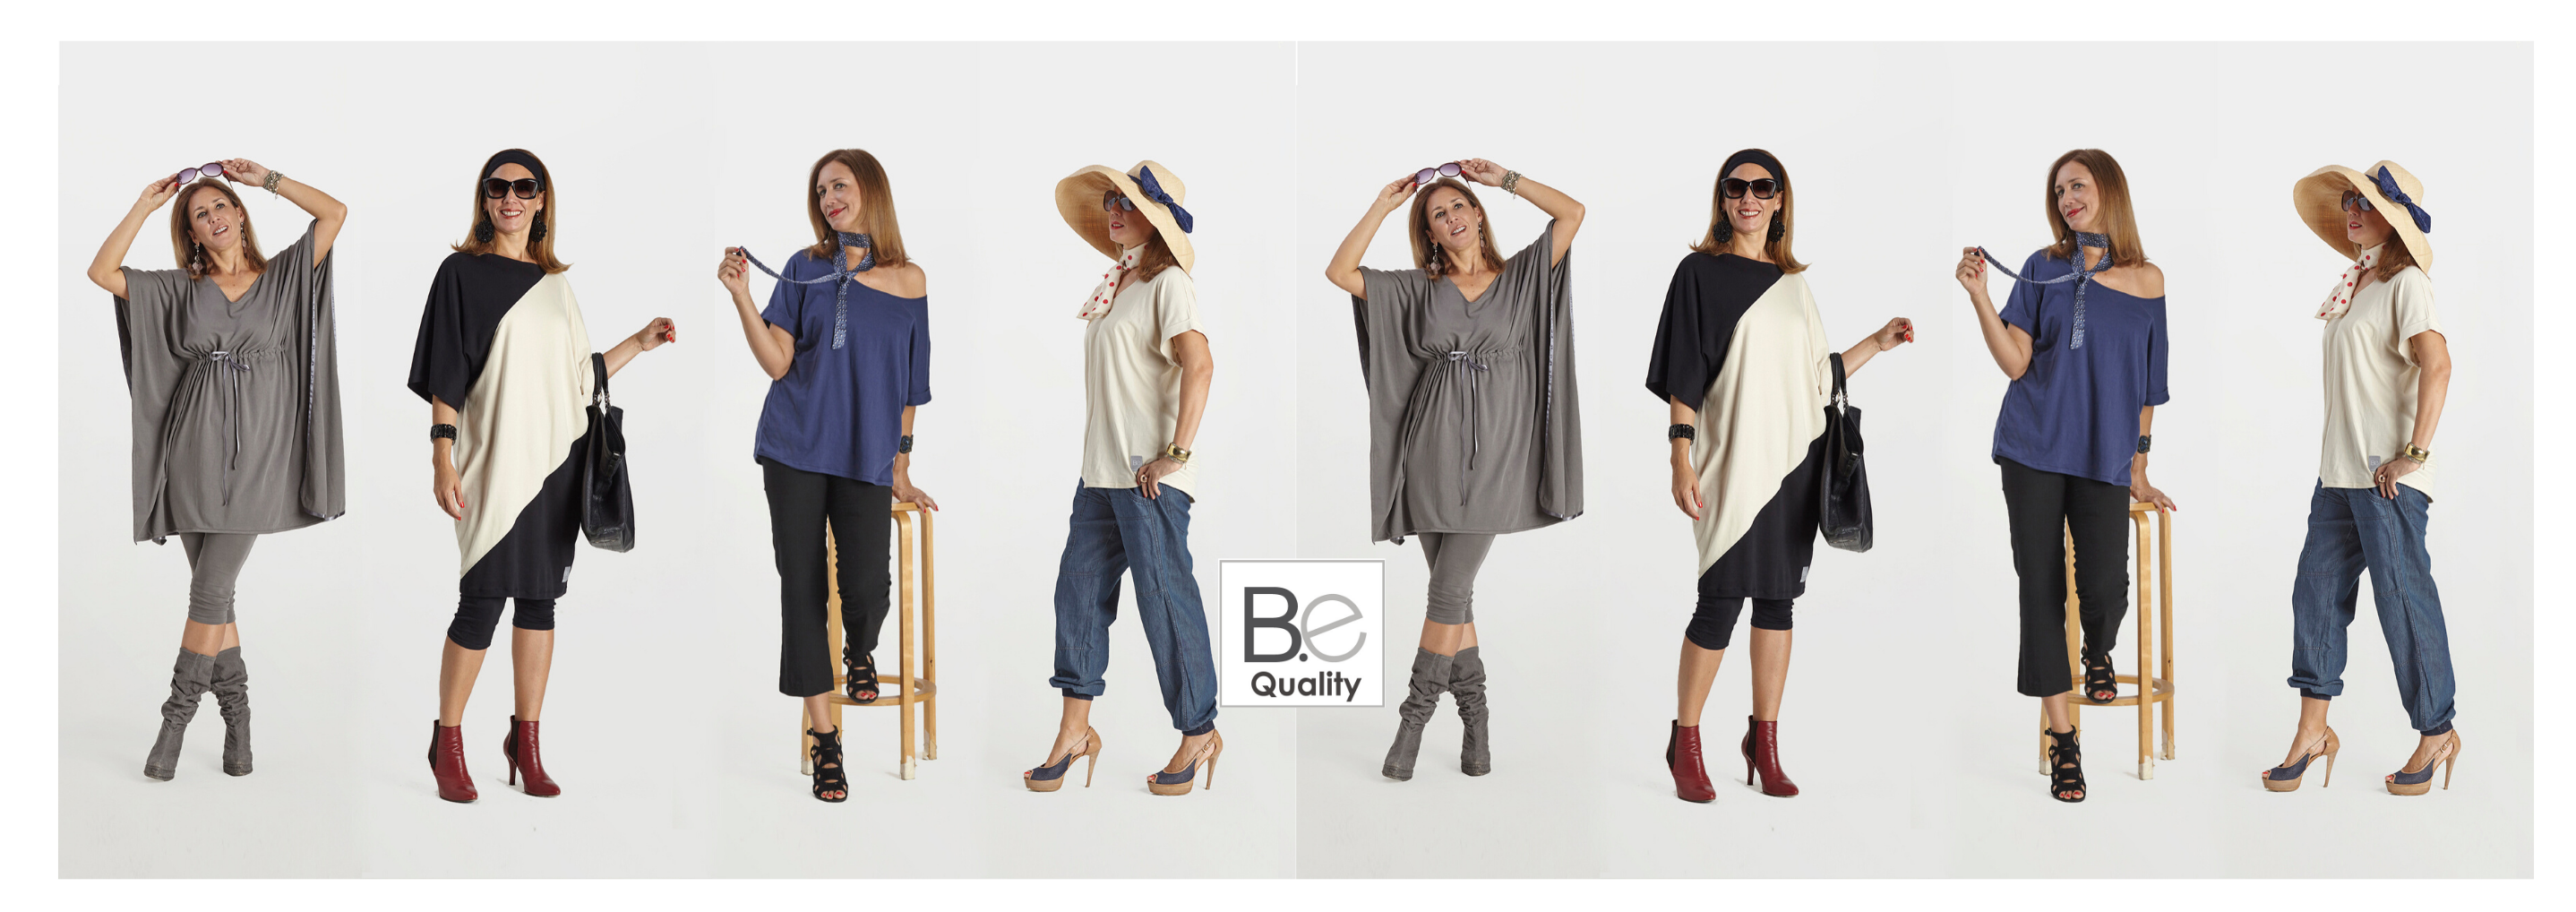 Fashion models by B.e Quality